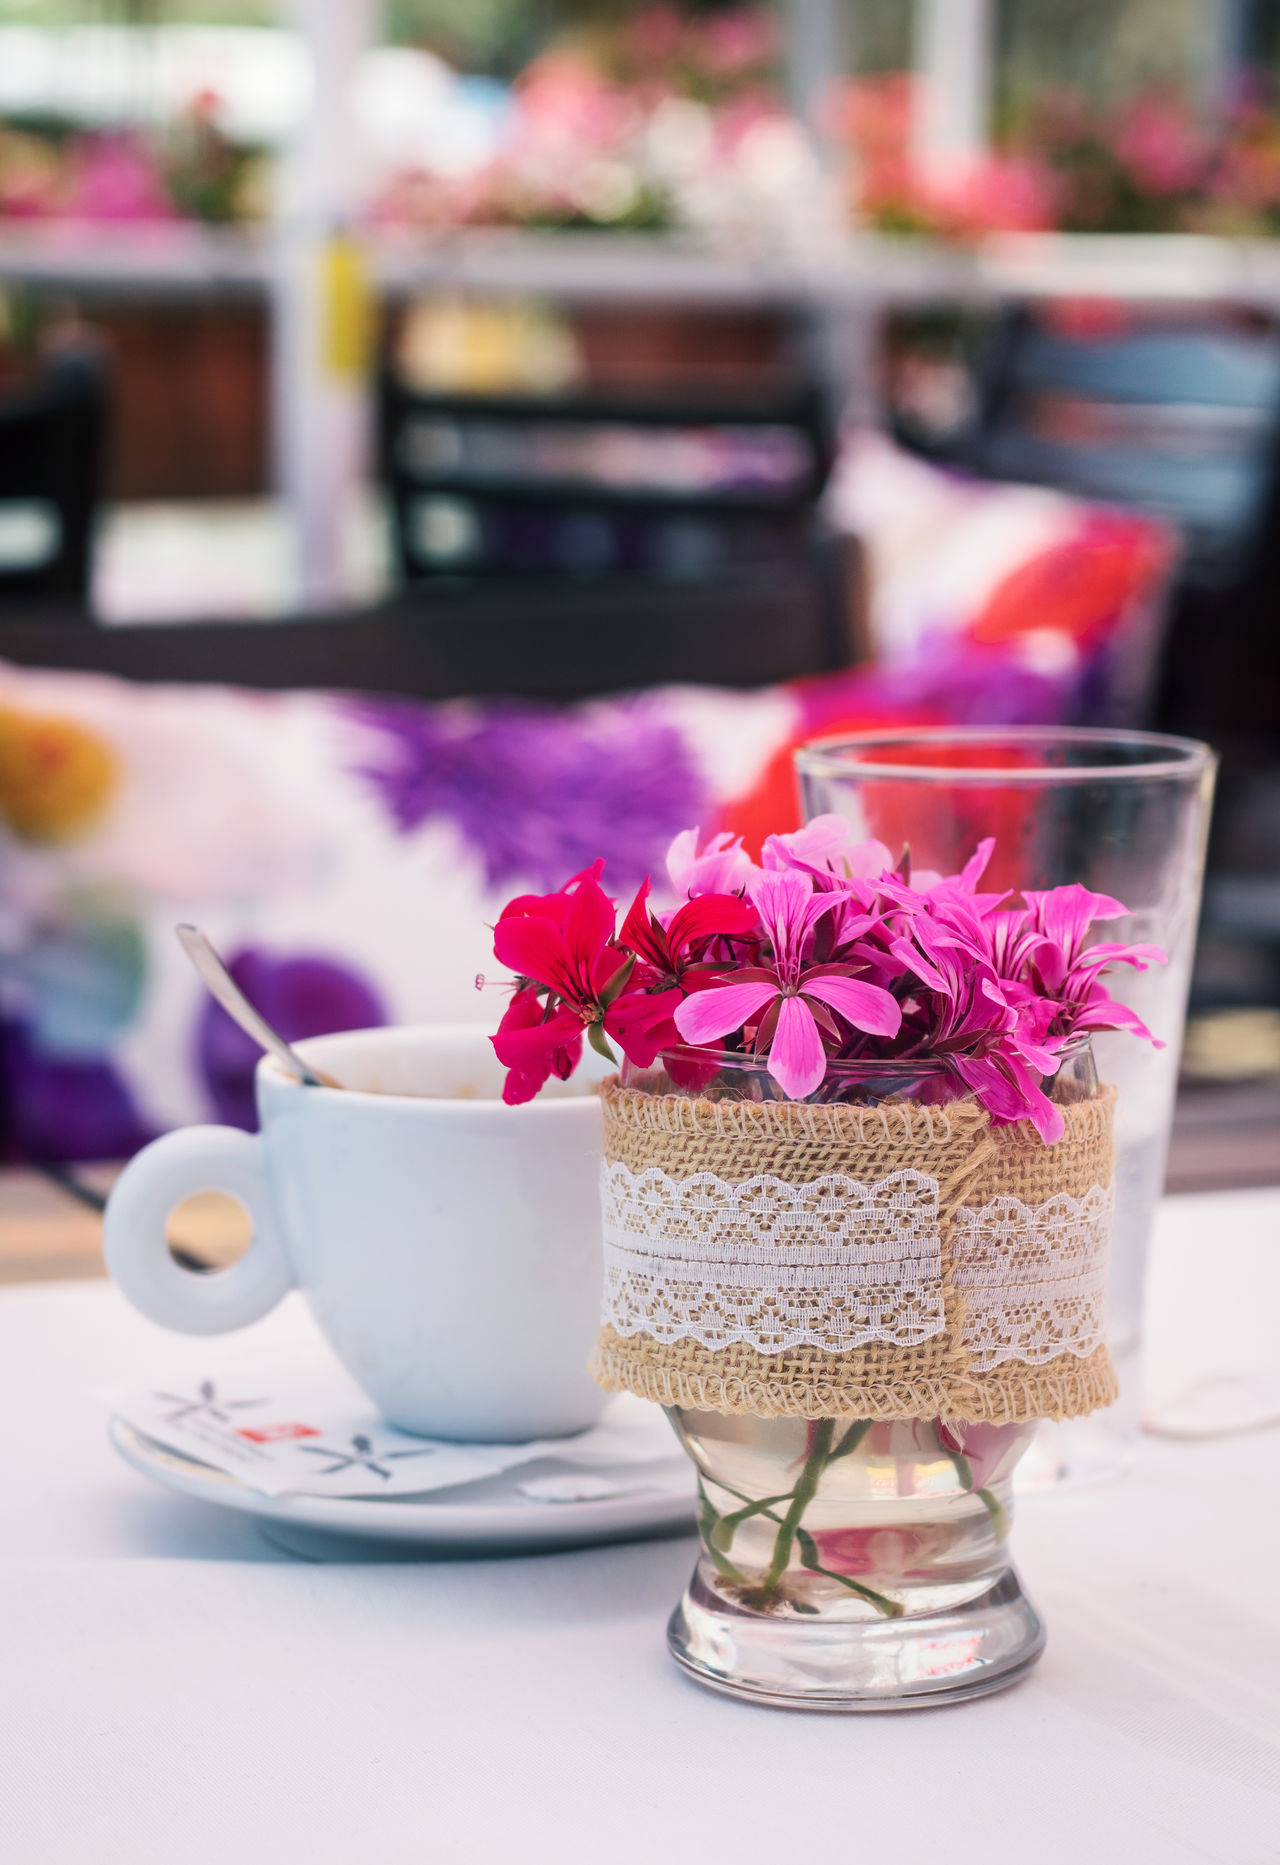 Close-up Coffee Day Drink Flower Focus On Foreground Food And Drink Fragility Freshness Indulgence No People Refreshment Table Temptation